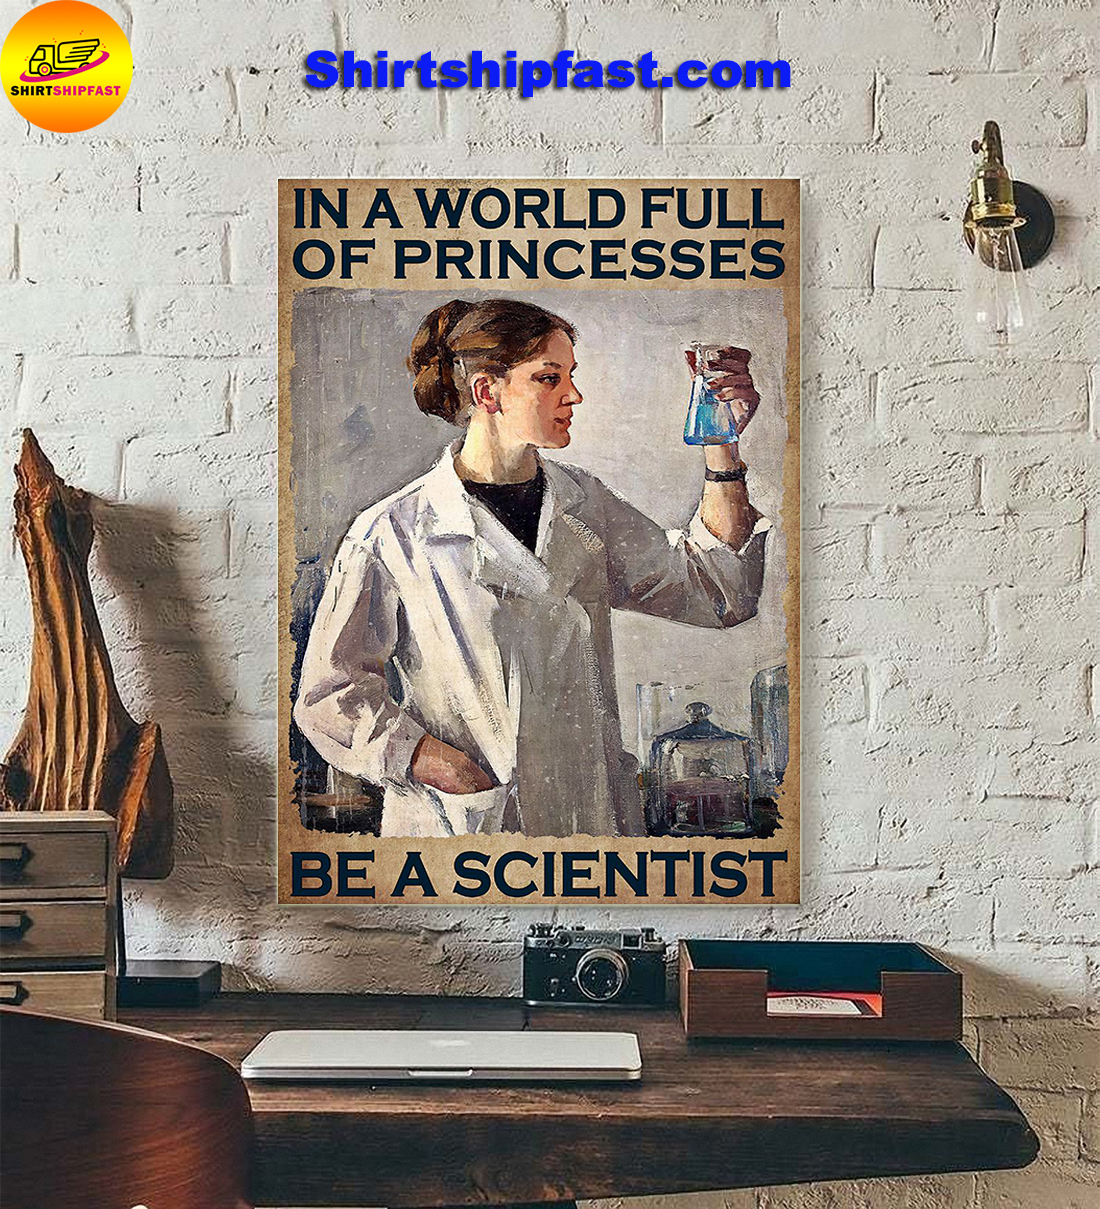 Girl In a world full of princesses be a scientist poster